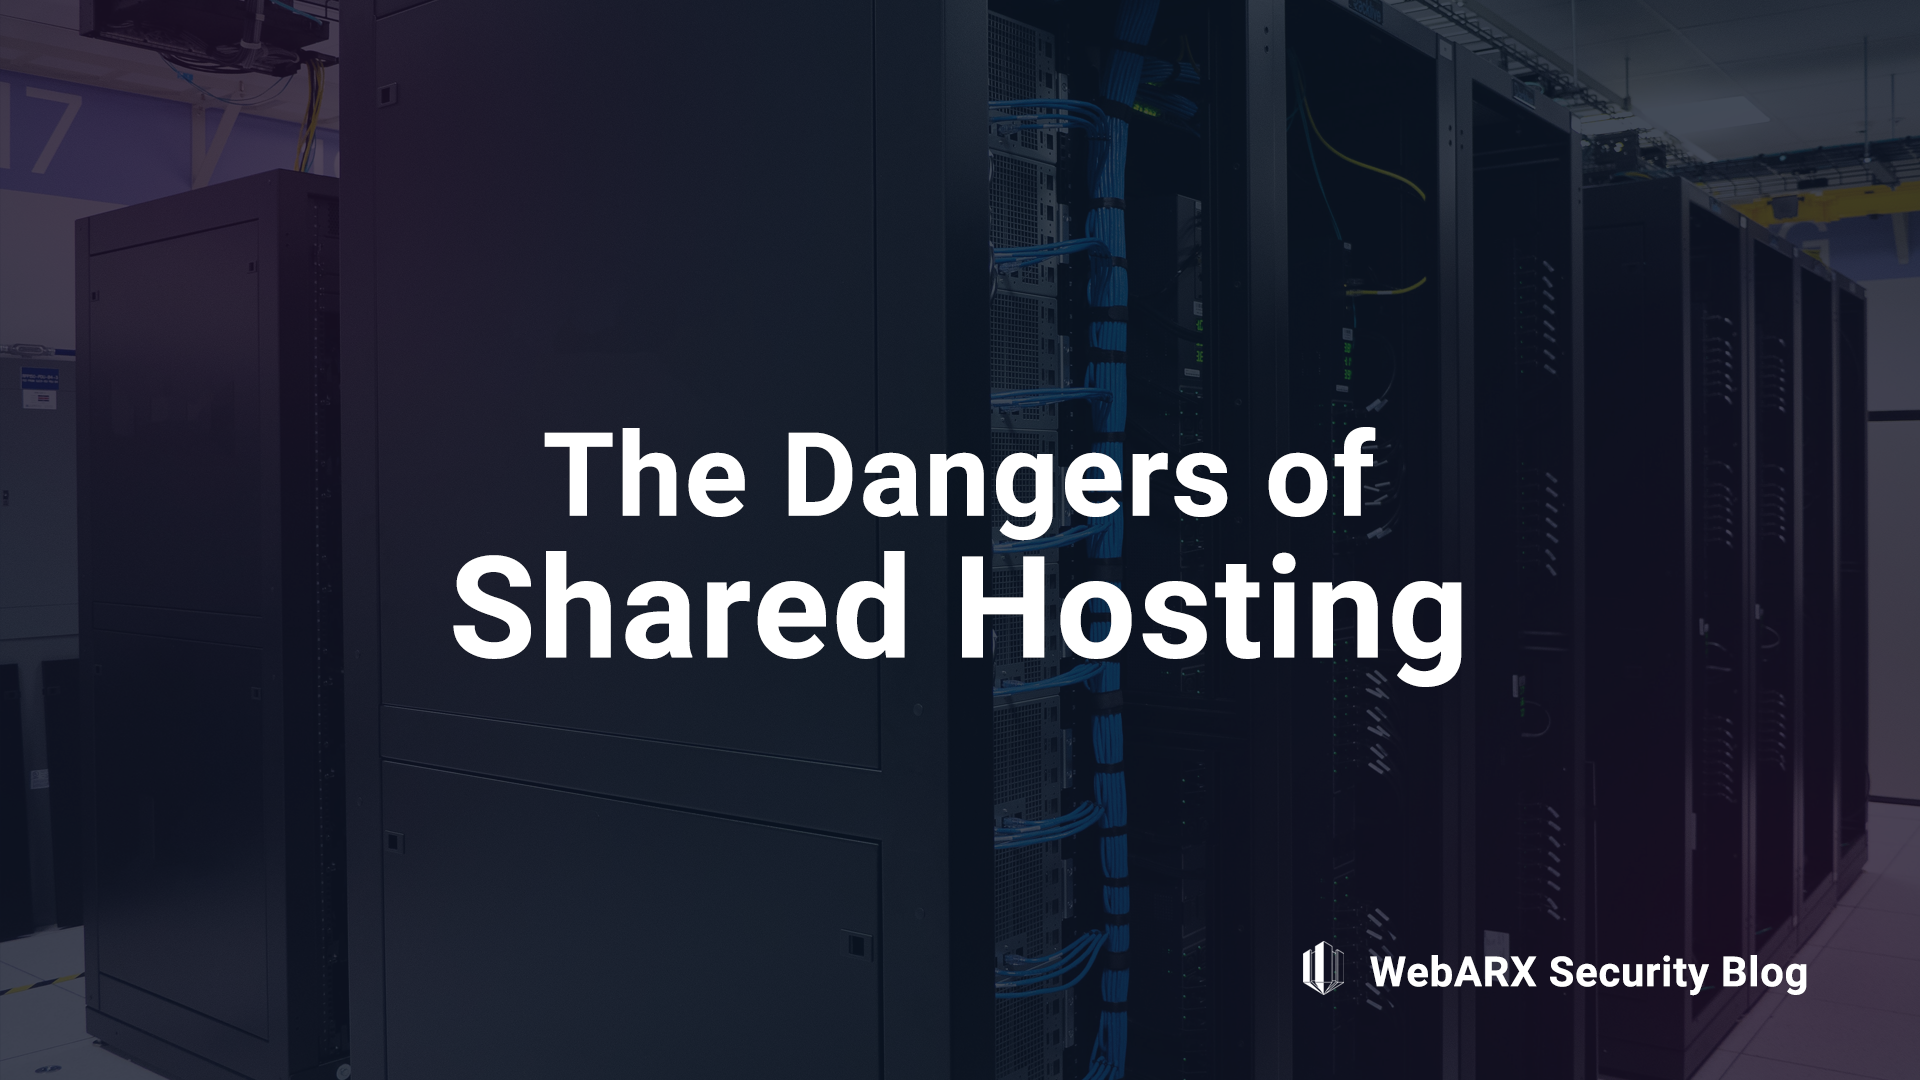 dangers of shared hosting webARX web application security website security